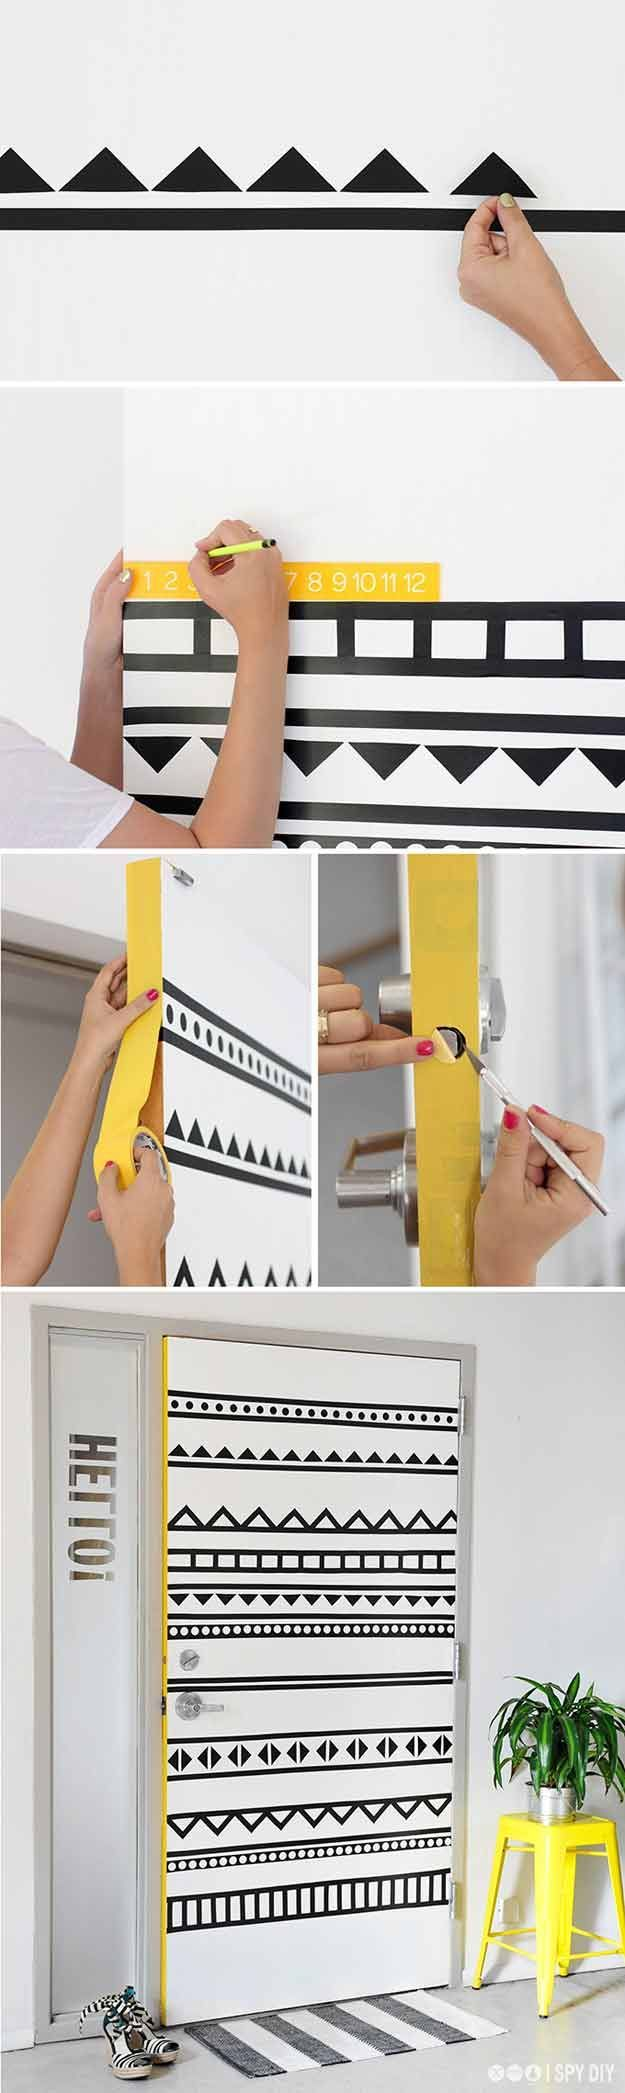 insanely cute teen bedroom ideas for diy decor also room rh pinterest